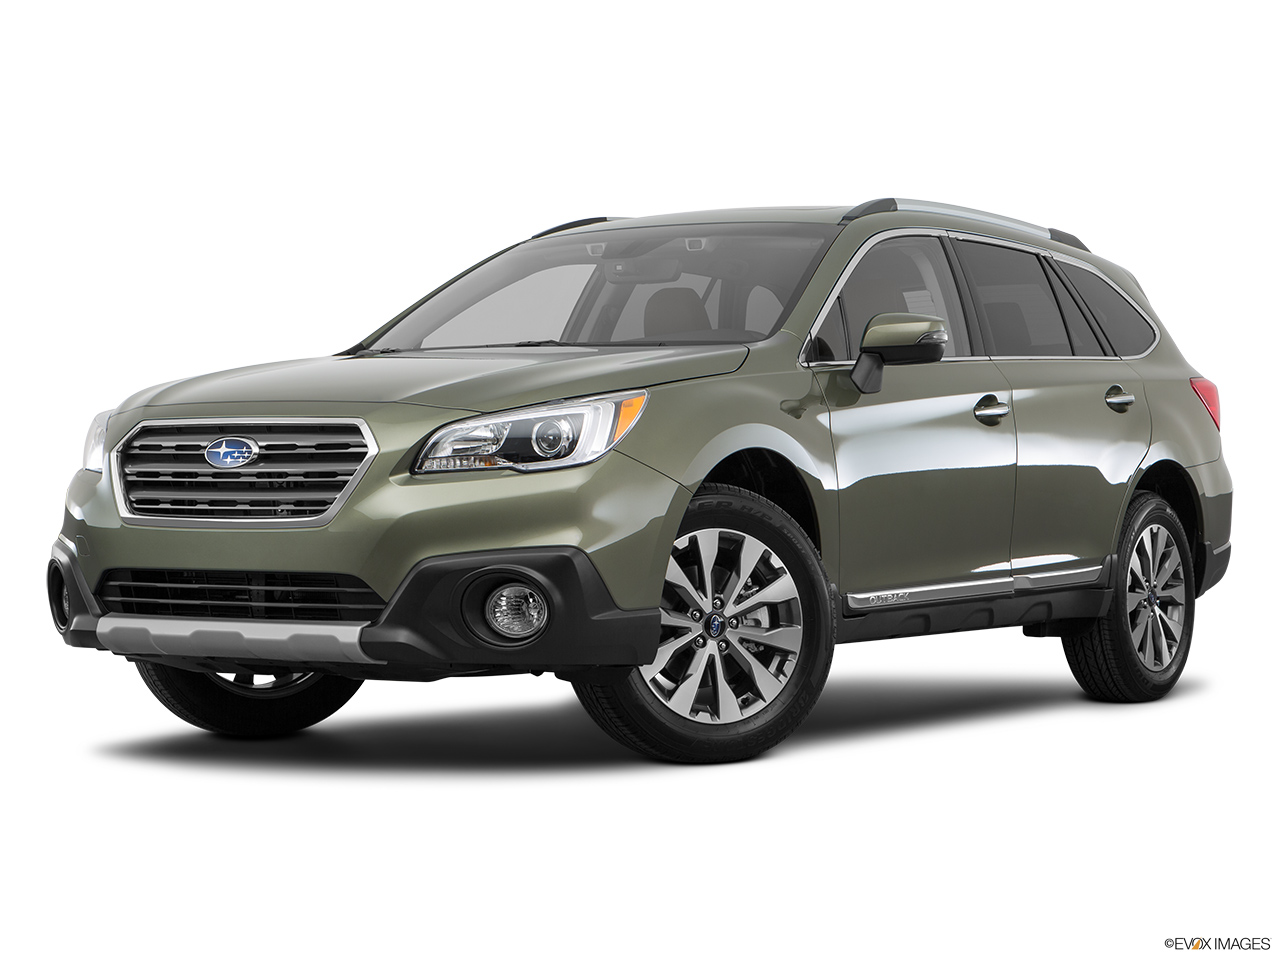 Cheapest Car To Lease >> Lease a 2017 Subaru Outback 2.5i Automatic AWD in Canada   Canada LeaseCosts